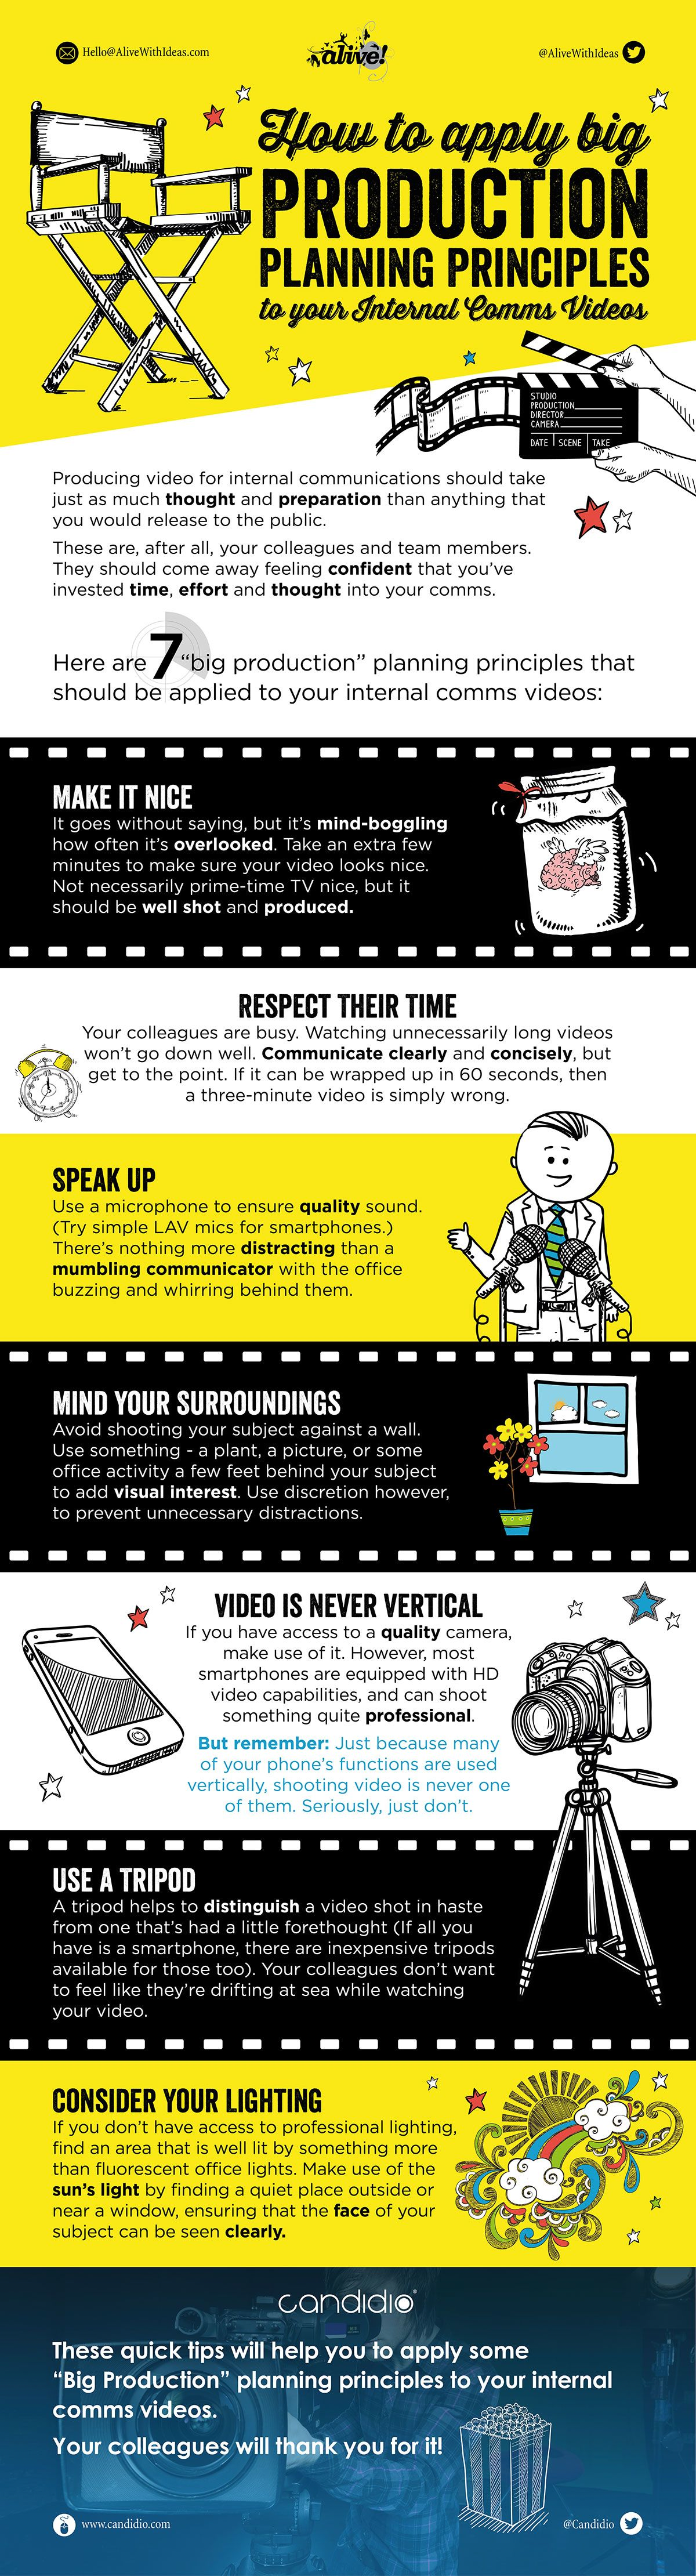 How to Apply Big Production Planning Principles to Your Internal Communication Videos